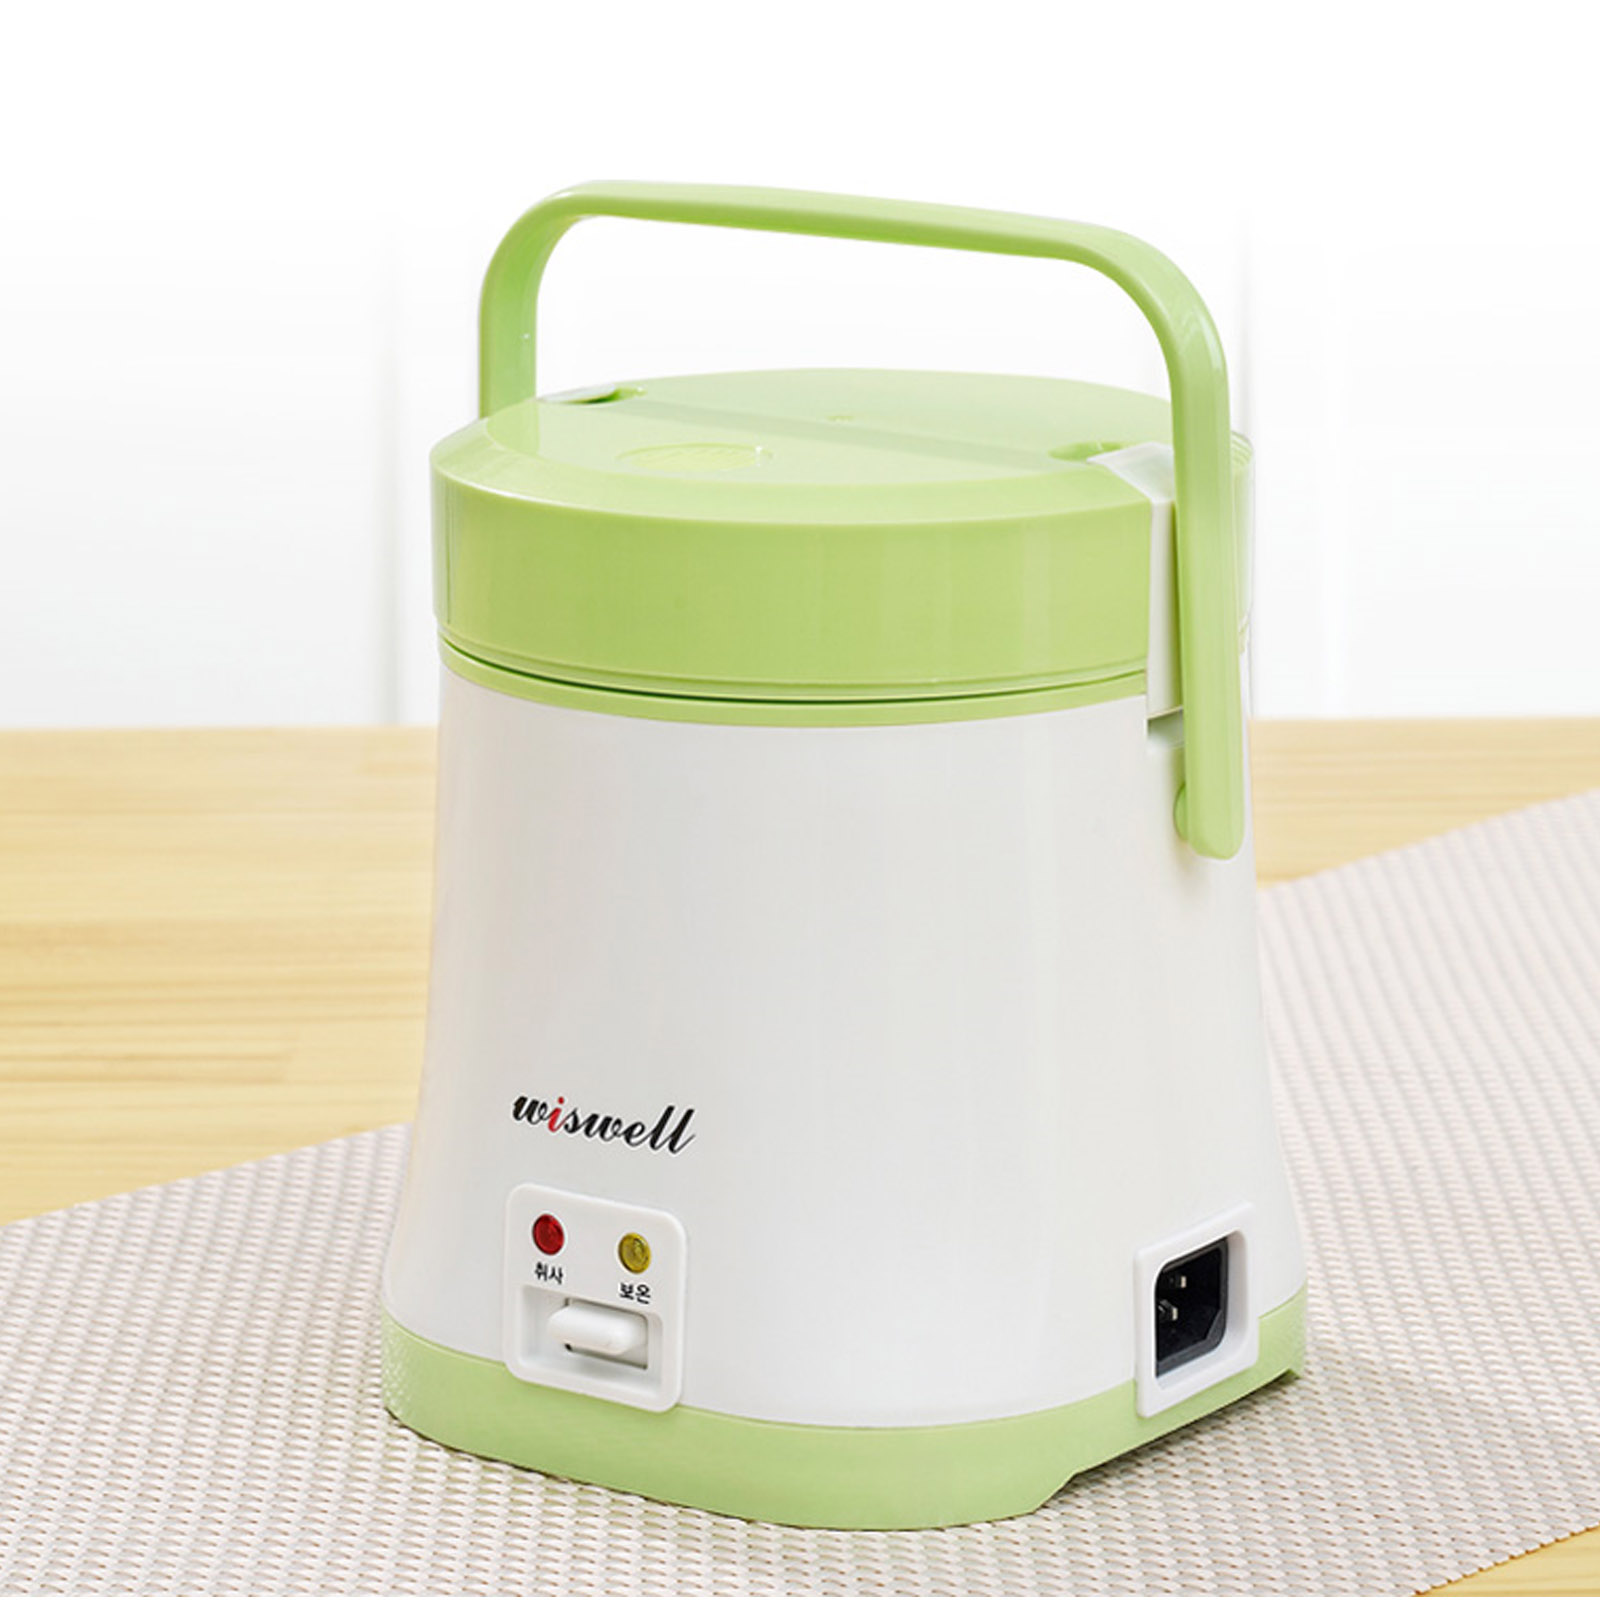 wiswell electric mini rice cooker bento rapid cooking portable thermal lunch. Black Bedroom Furniture Sets. Home Design Ideas